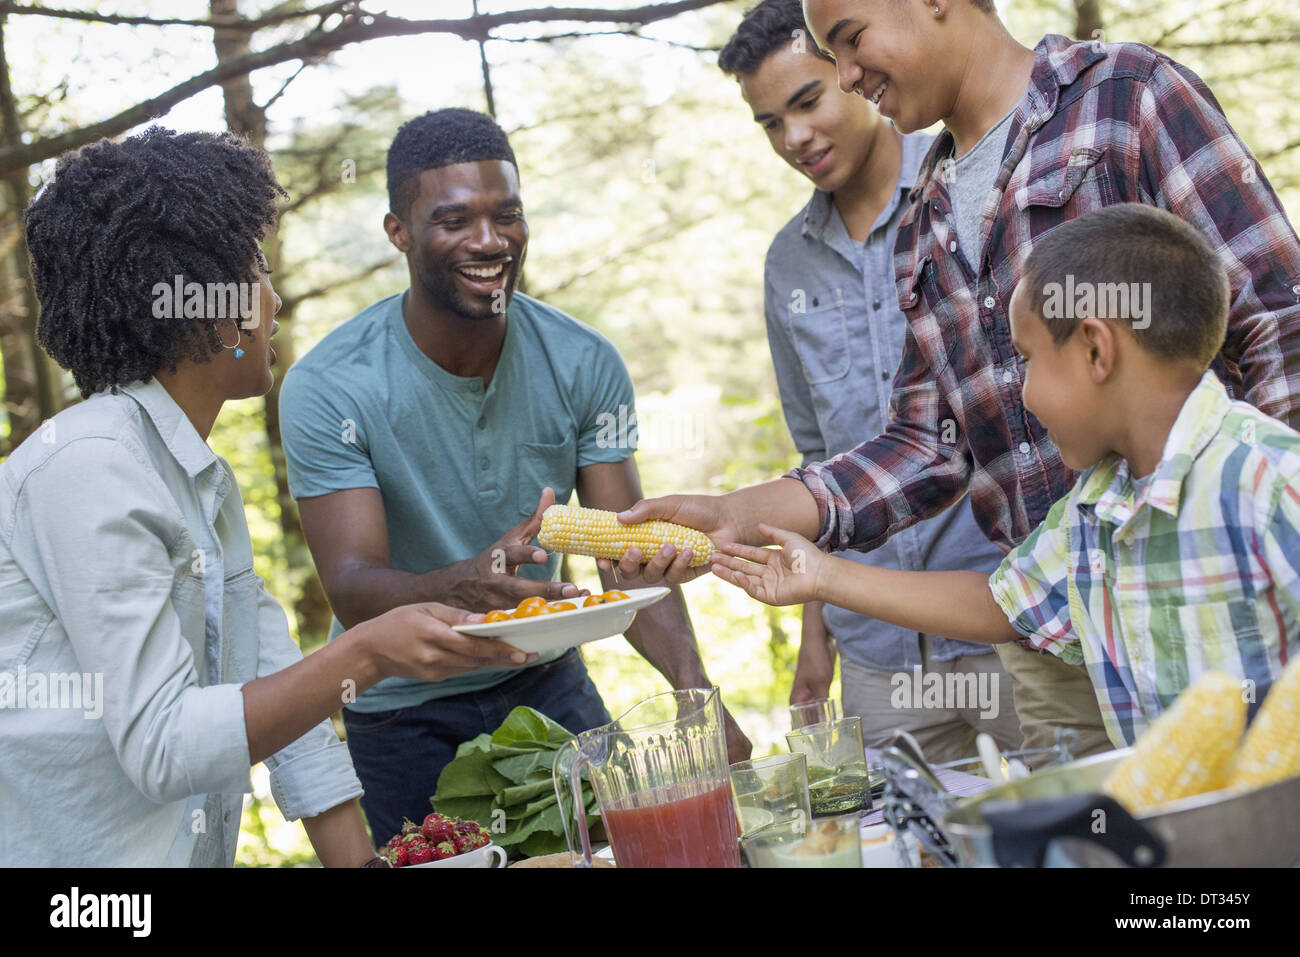 A family picnic in a shady woodland Adults and children around a table handing around plates and food - Stock Image